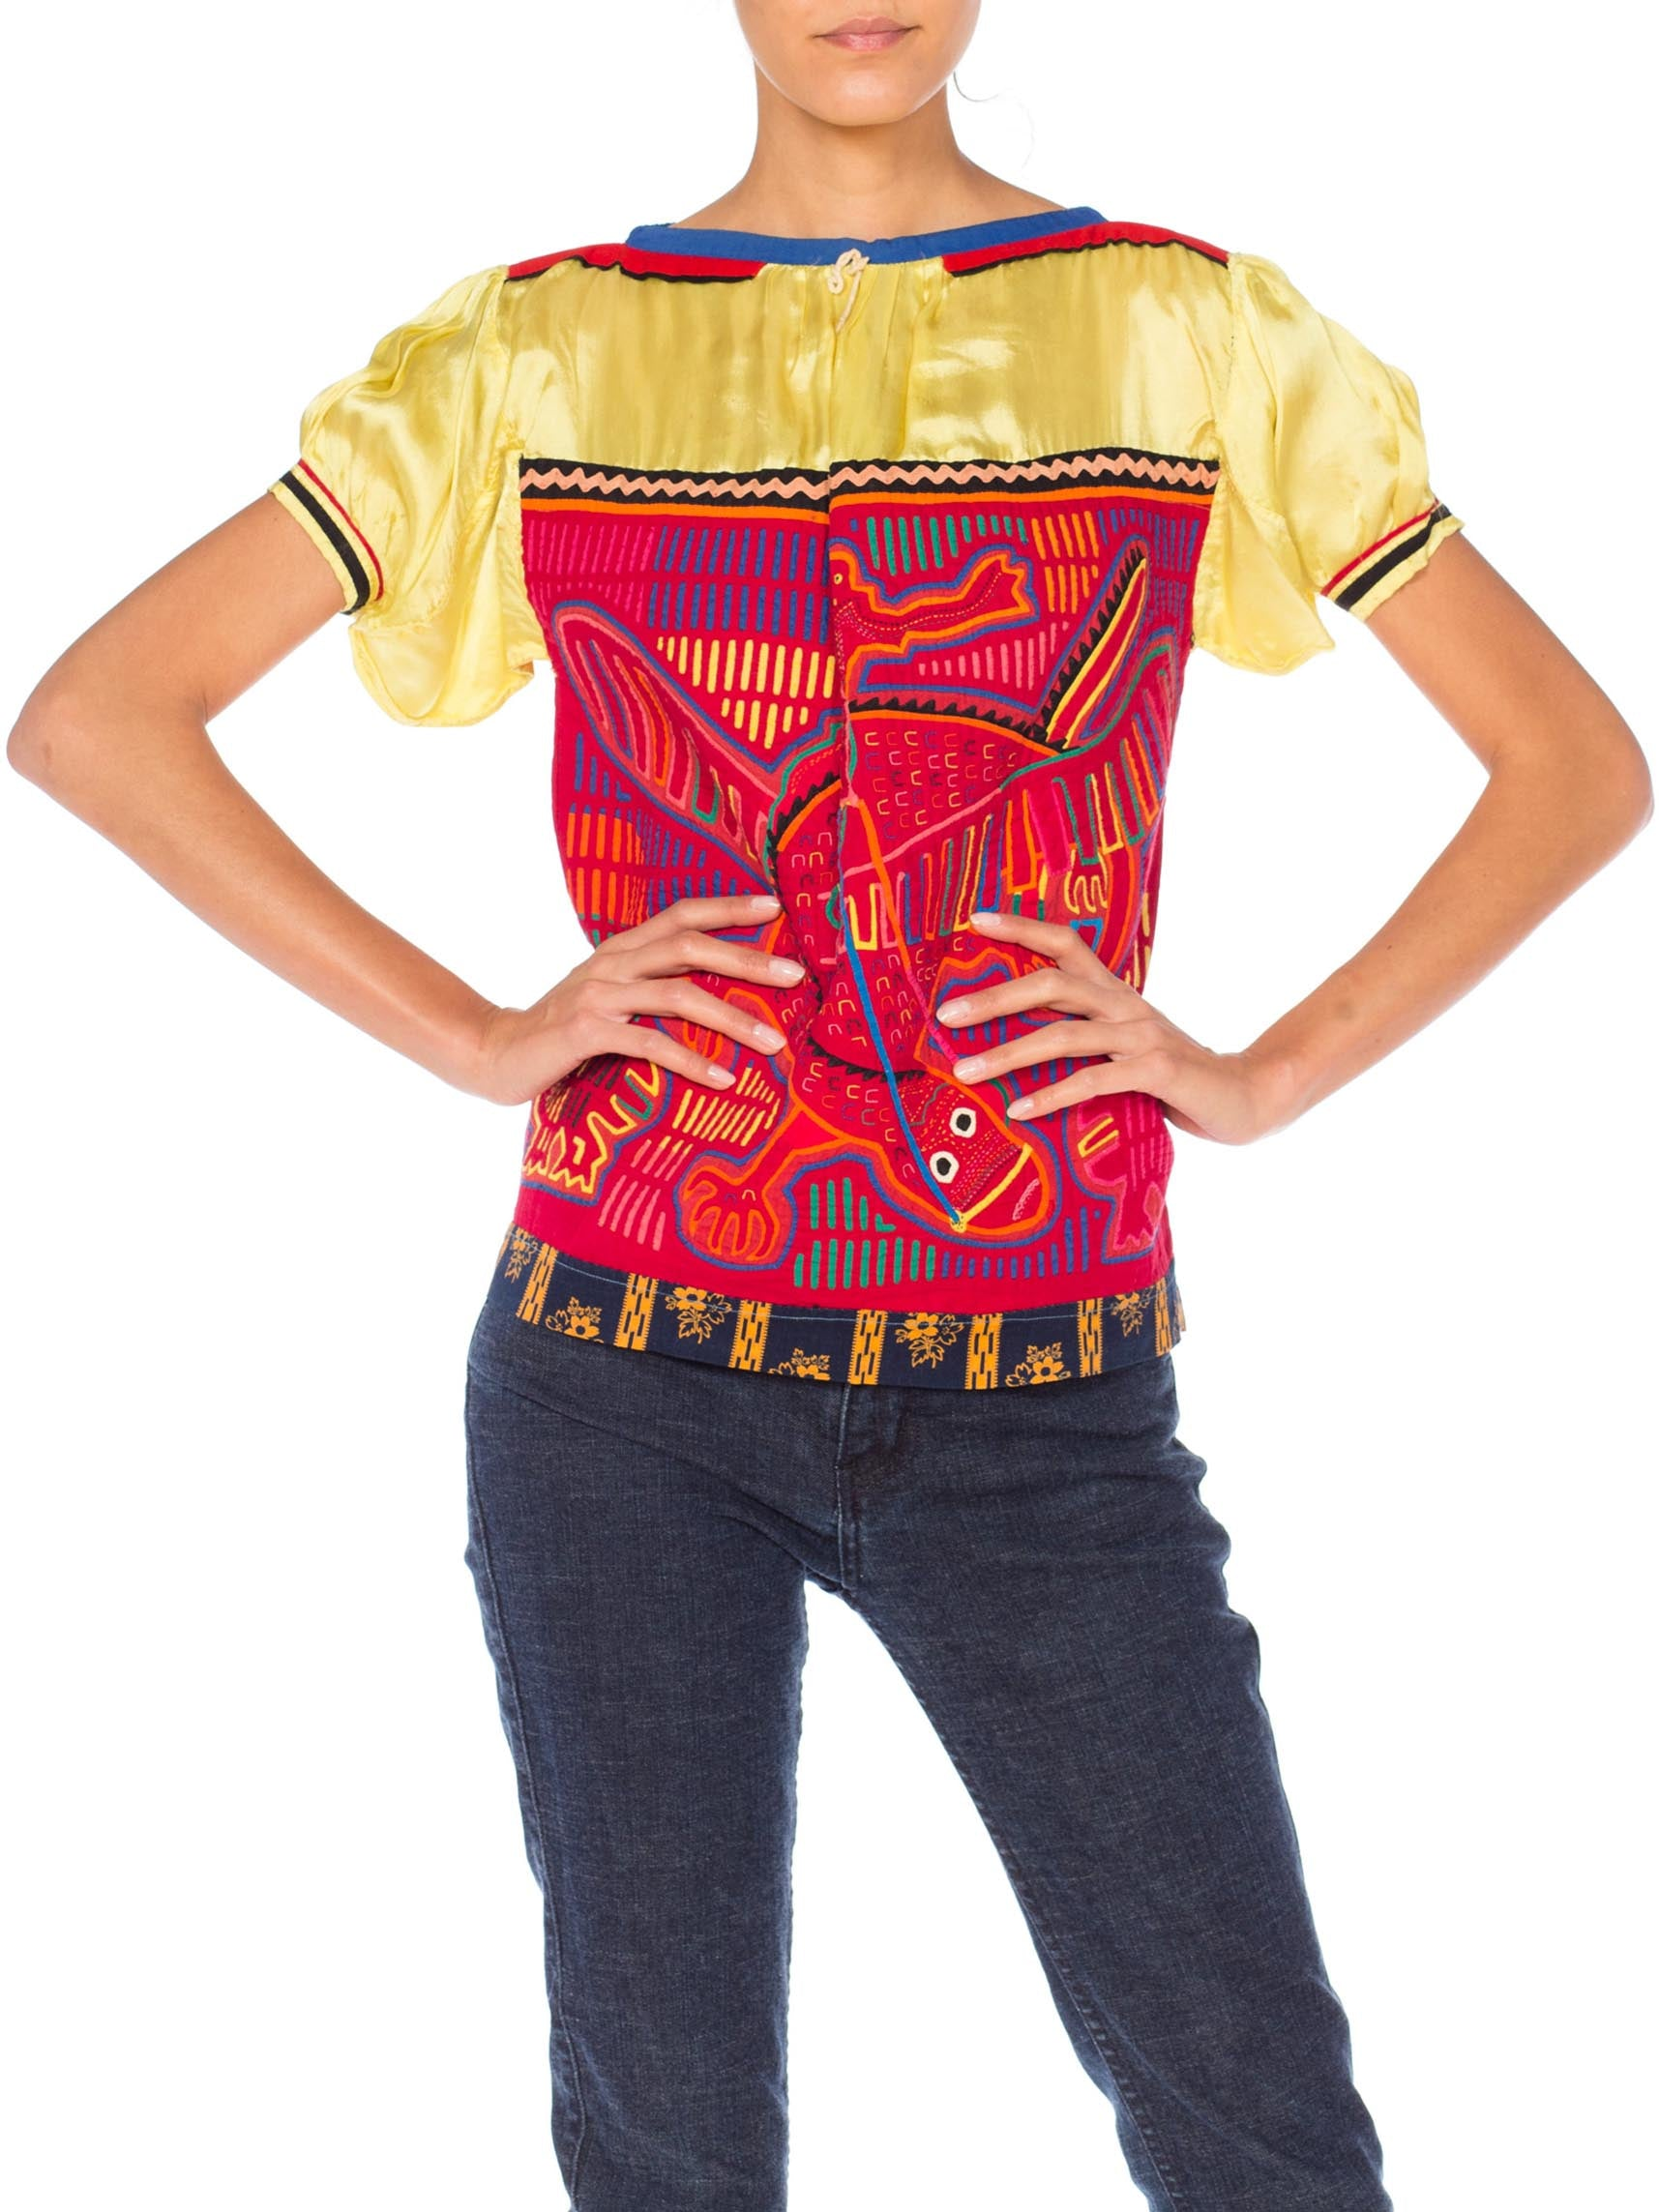 1960S Red & Yellow Cotton South American Top Appliquéd With Lizard And Birds